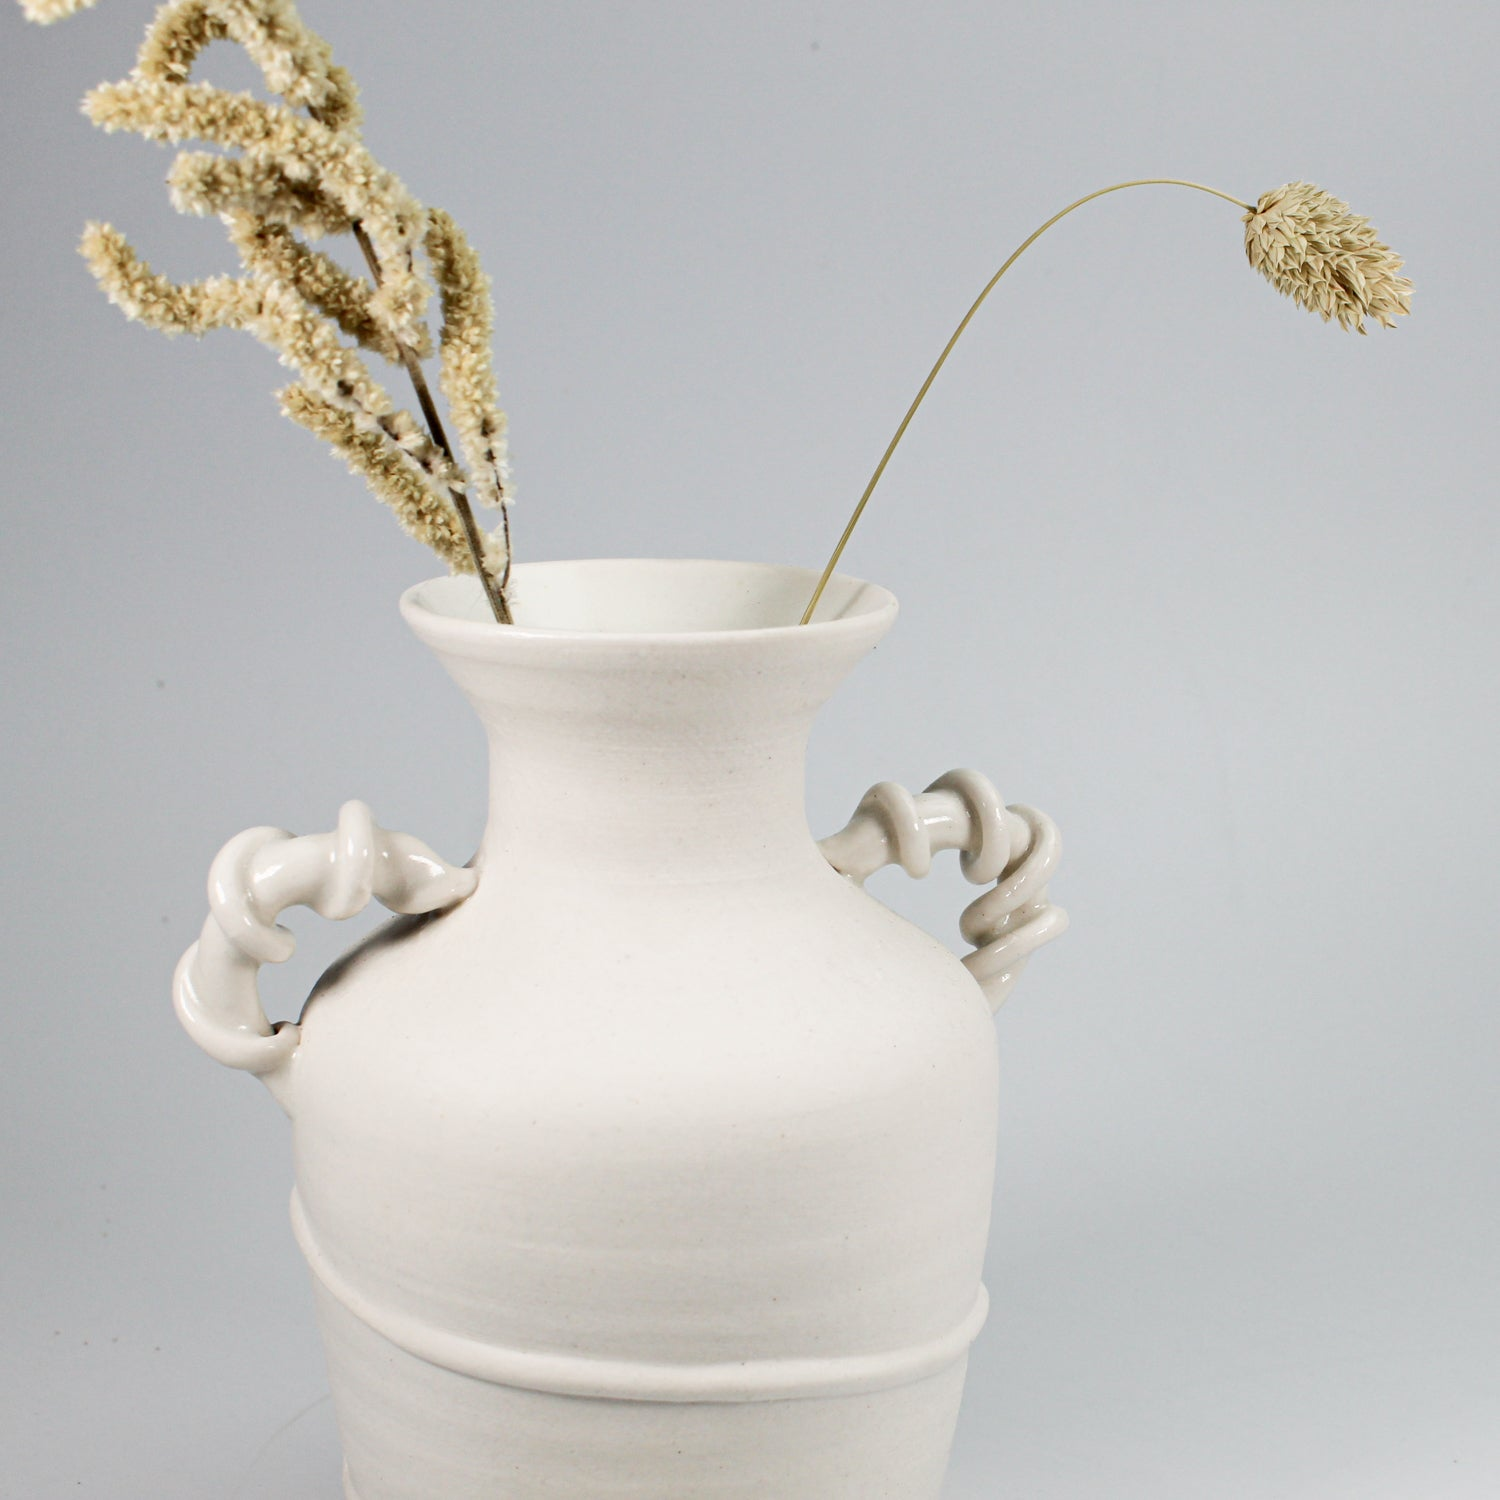 Top of small white ceramic vase with twisted handles. Dried grasses are displayed in it.